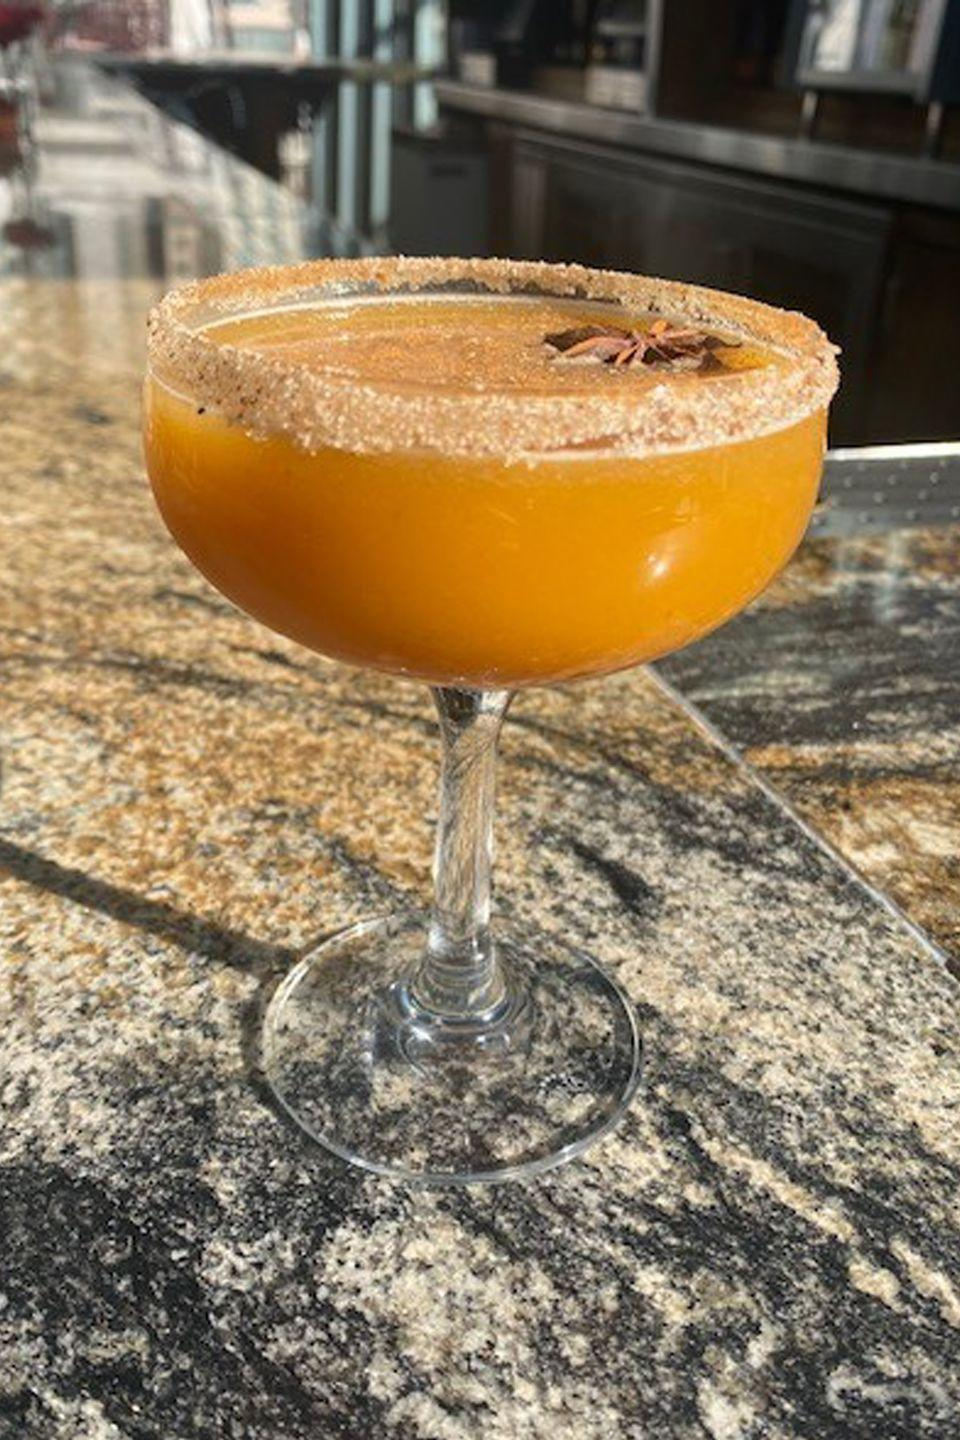 <p><strong>Ingredients</strong></p><p>2 oz Woodford Reserve <br>1 oz Grand Marnier<br>1 oz Domaine De Canton<br>.5 oz lemon juice<br>2 oz pumpkin puree</p><p><strong>Instructions</strong></p><p>Stir all ingredients together, and pour into a couple glass or glass or choice. Top with a sprinkling of allspice and nutmeg mixture and a star anise pod for added flavor.</p><p><em>By Grant Gedemer of I|O Godfrey in Chicago.</em></p>